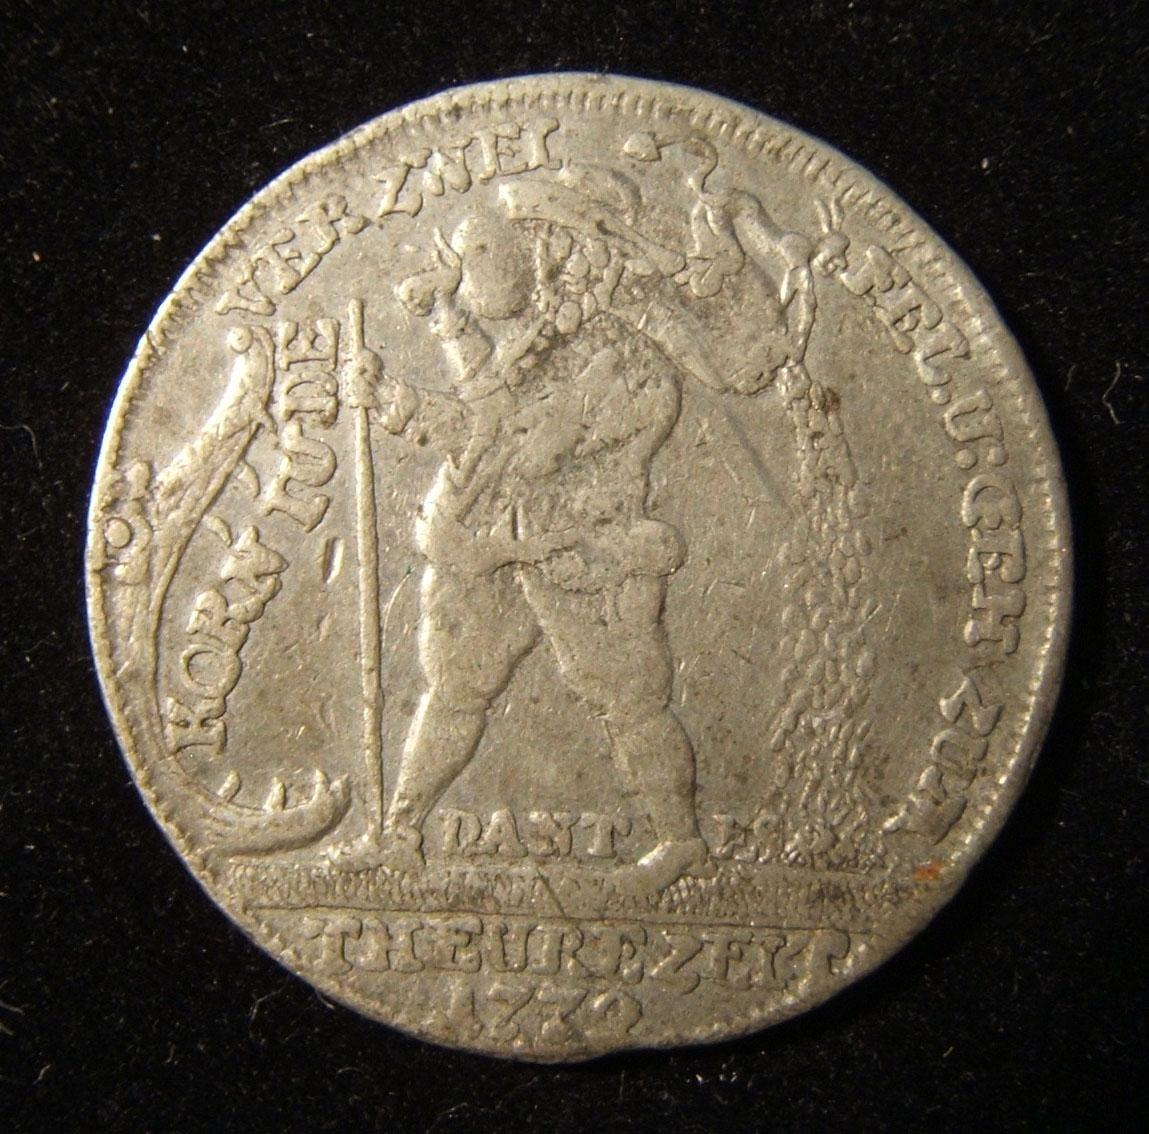 Germany > Bavaria > Fürth: Kornjude jeton, 1772, by Johann Christian Reich; struck in pewter(?); size: 29mm; weight: 6.75g. Obv.: Jewish grain peddler to left w/ Devil on sac